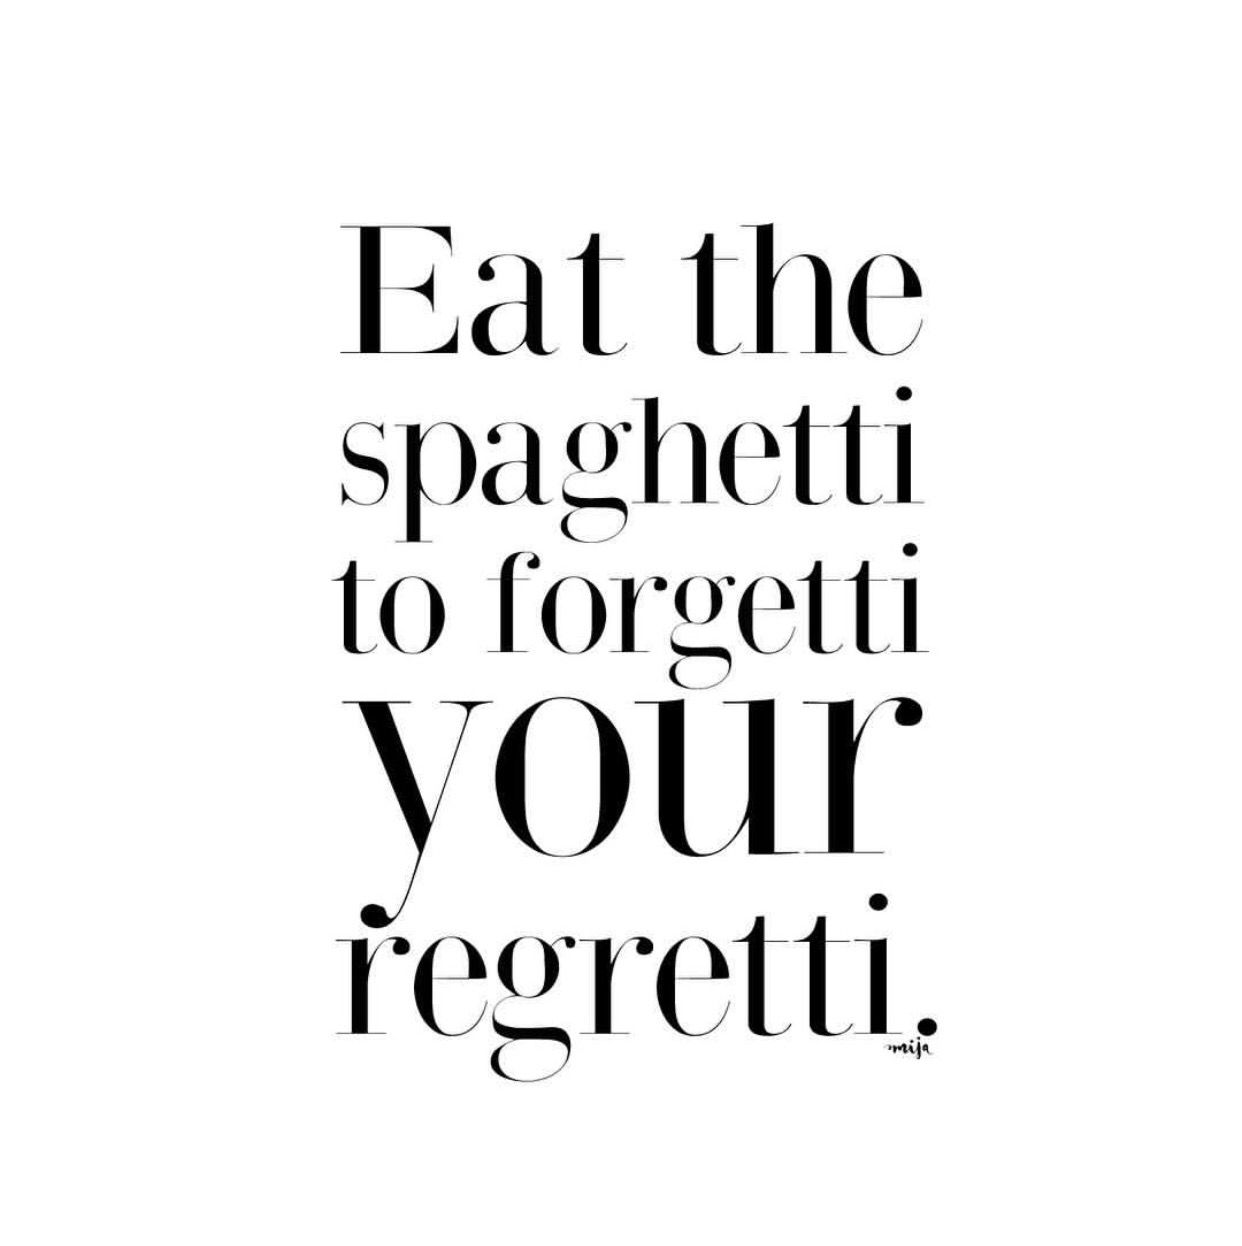 Italian Quotes About Life Pinsophie Ball On Quotes  Pinterest